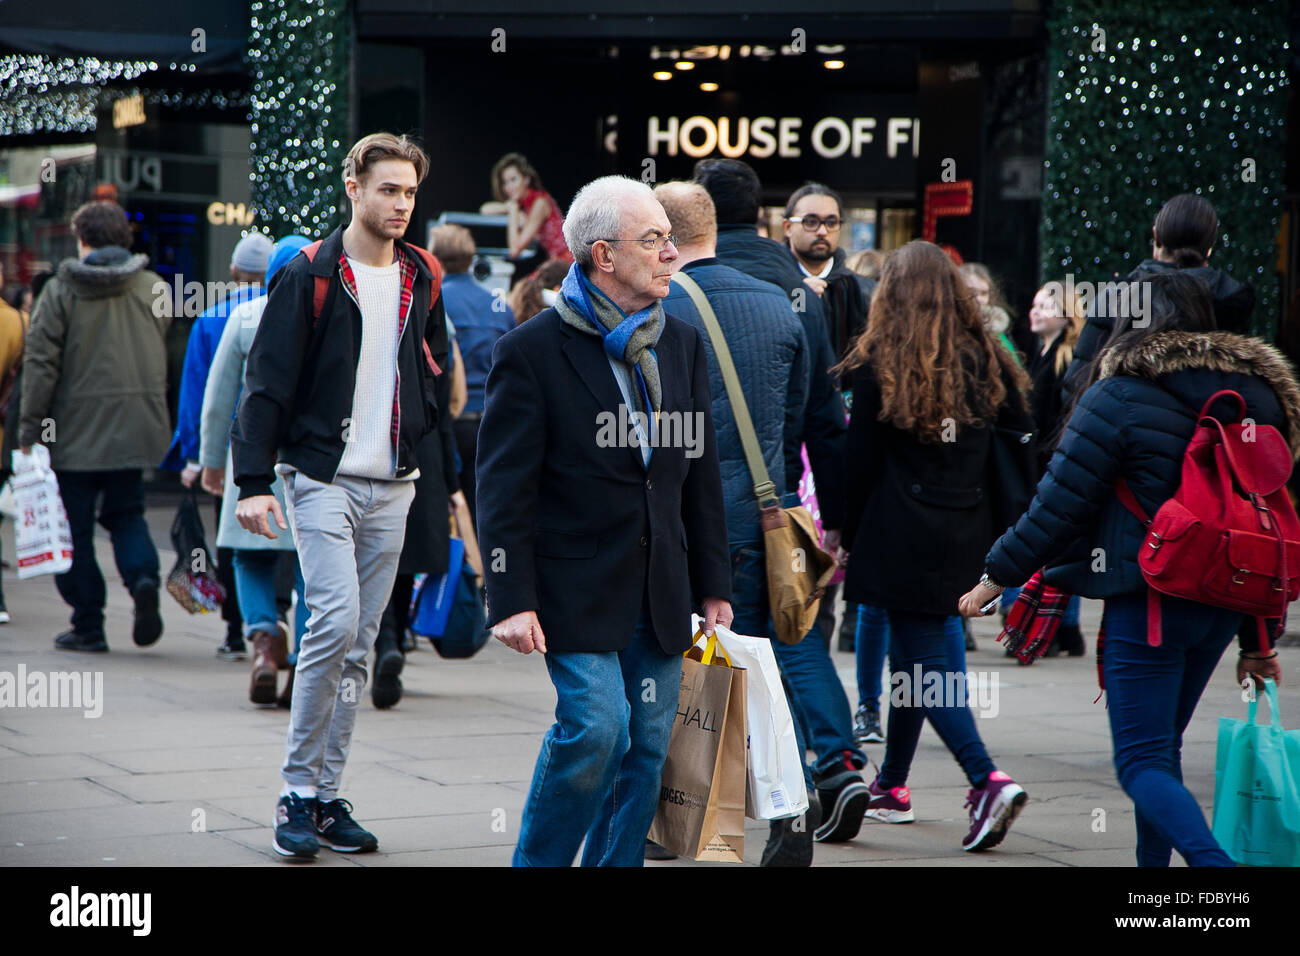 Christmas shopper with shopping bags in Oxford Street in London's West End. Stock Photo